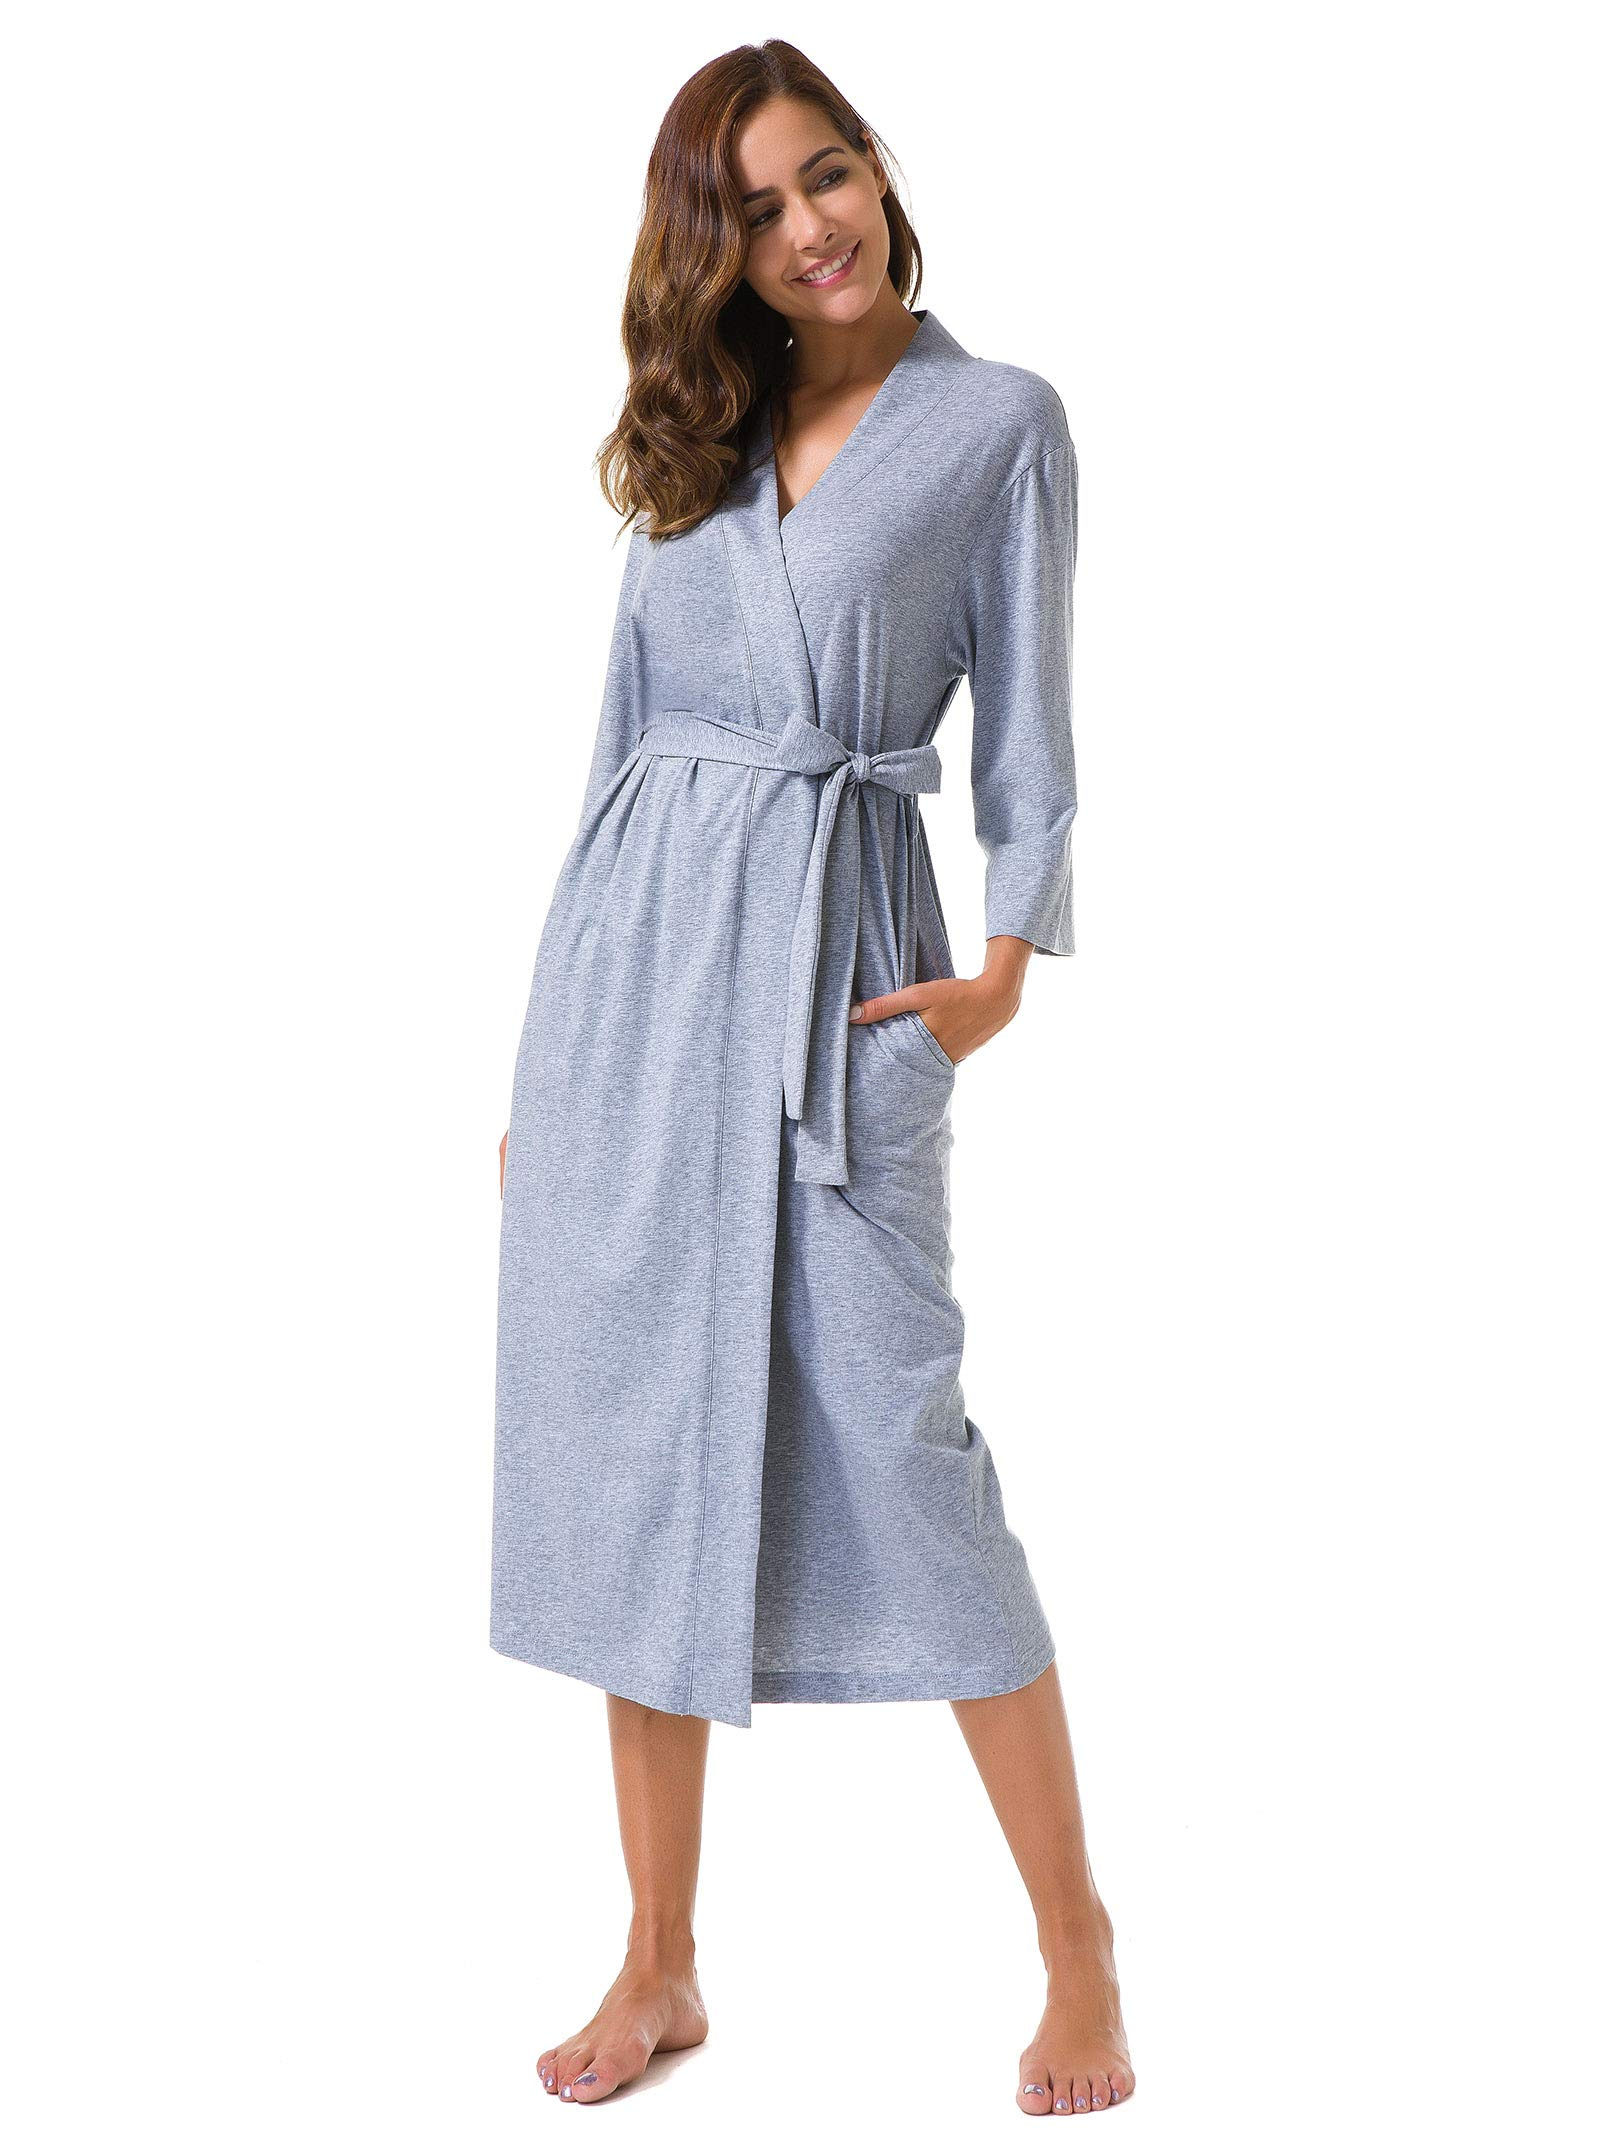 658ccff8b9e1b SIORO Women s Kimono Robes Cotton Lightweight Robe Long Knit Bathrobe Soft  Sleepwear V-Neck Ladies